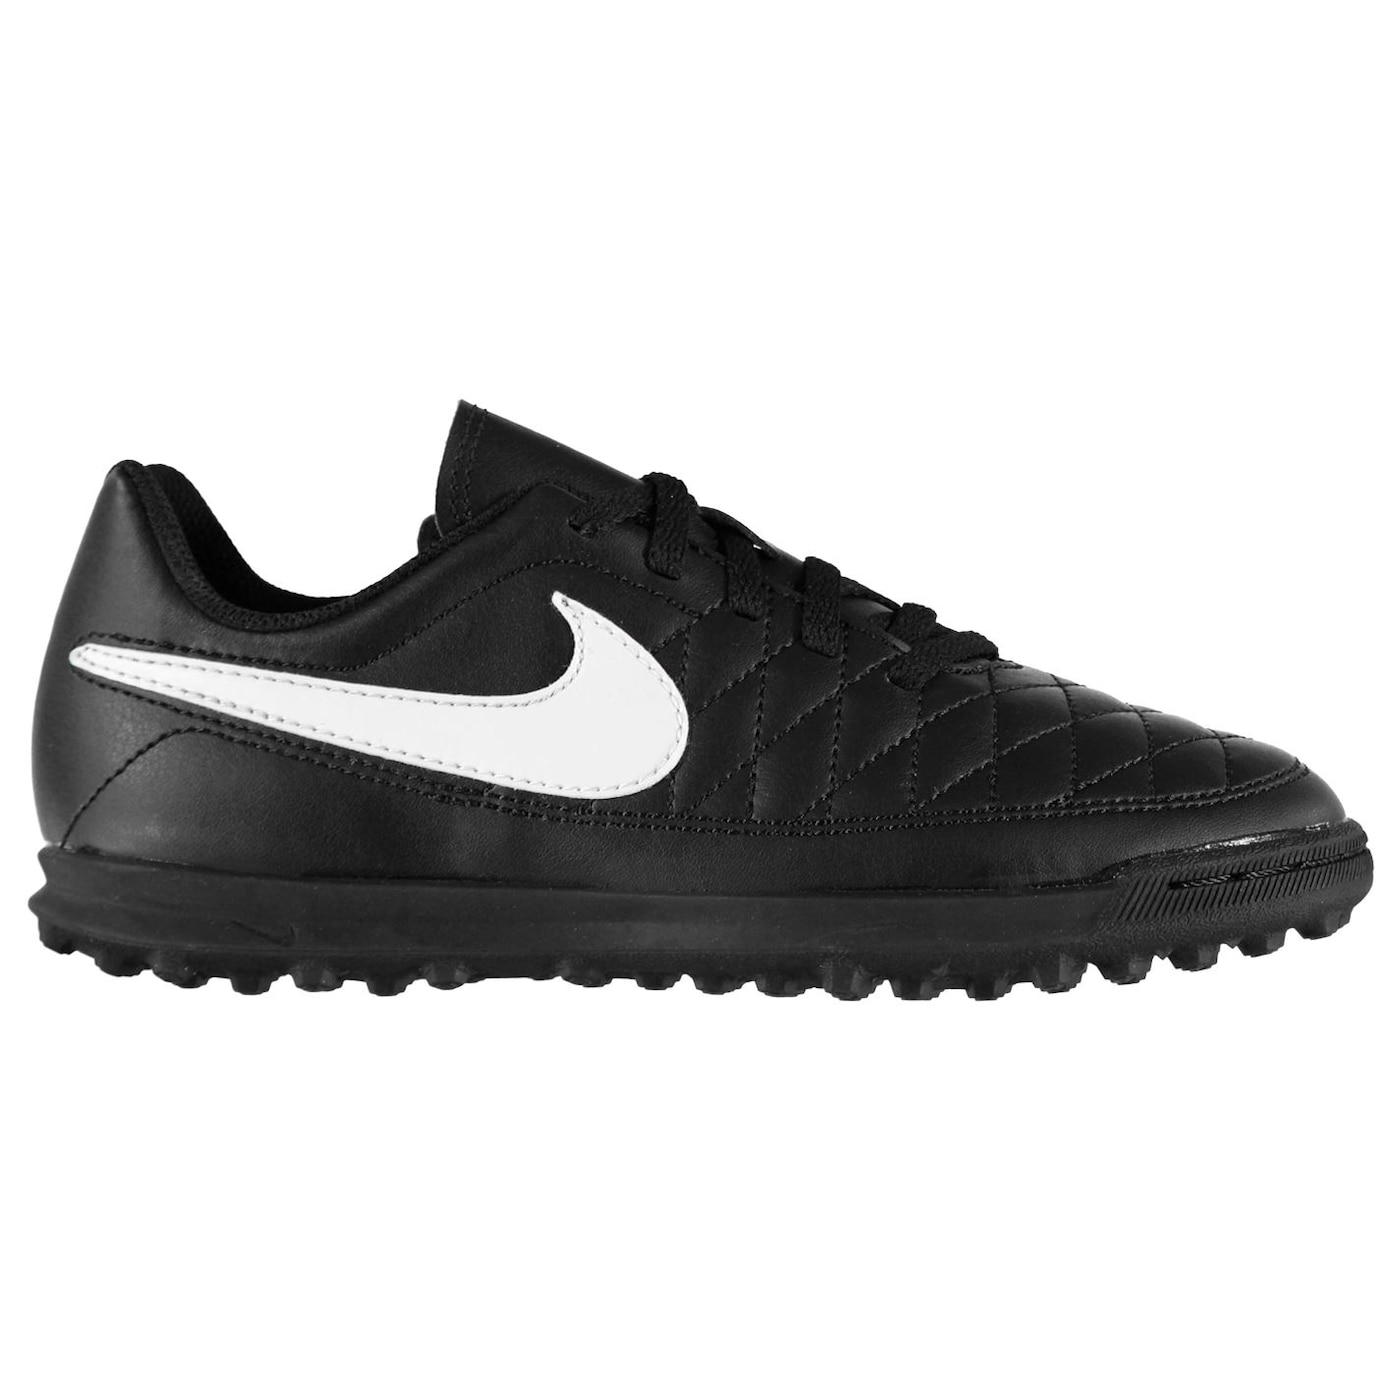 50de7f61b0 Nike Majestry TF Football Boots Child Boys